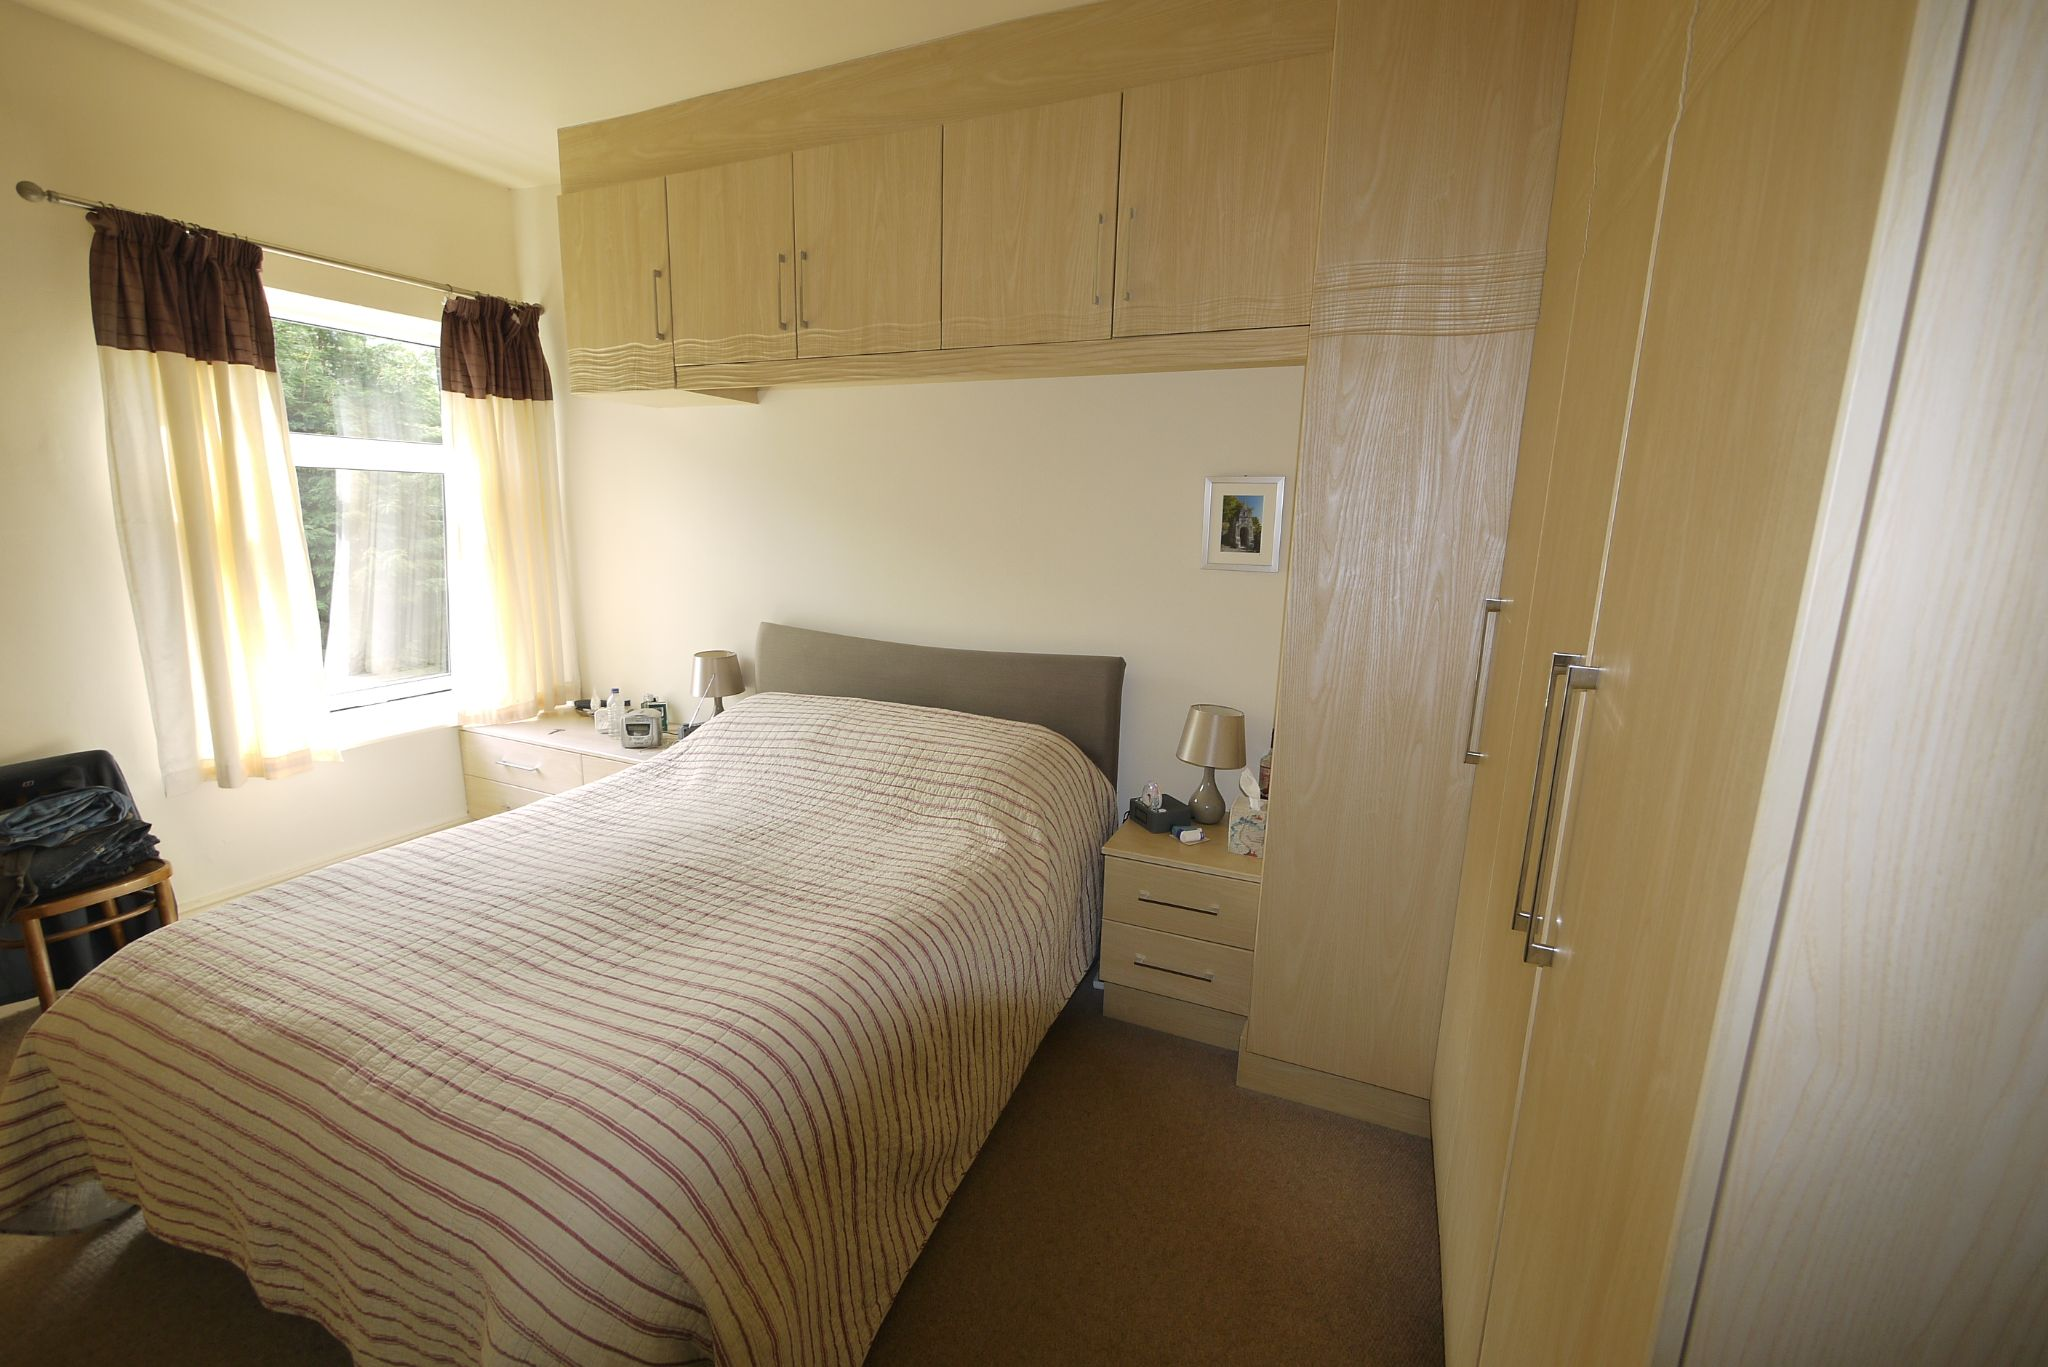 3 bedroom semi-detached house For Sale in Brighouse - Photograph 10.